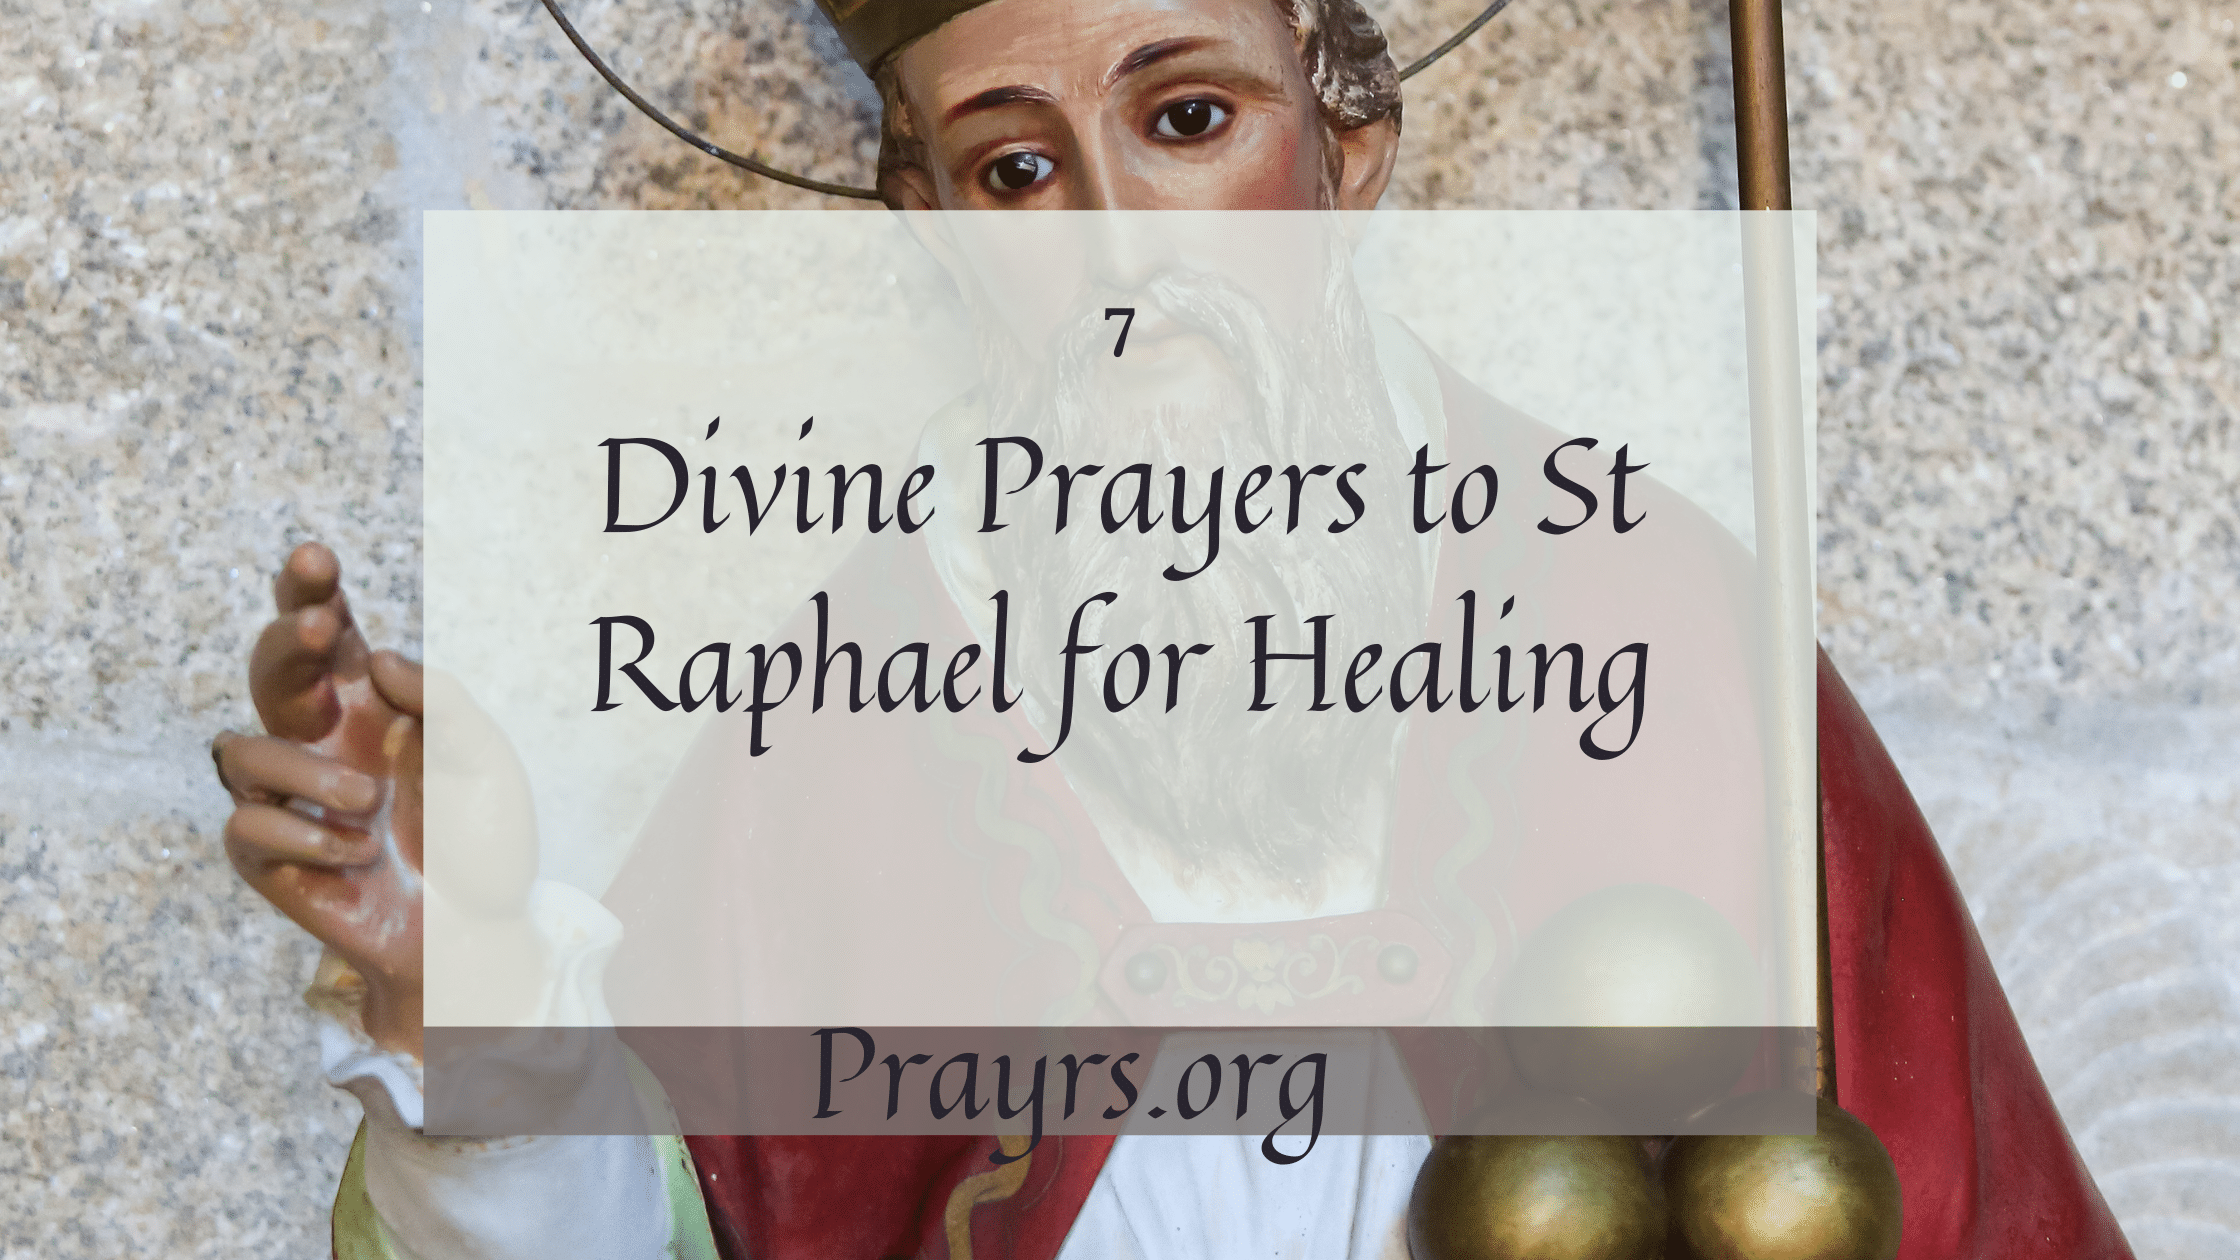 Prayers to St Raphael for Healing